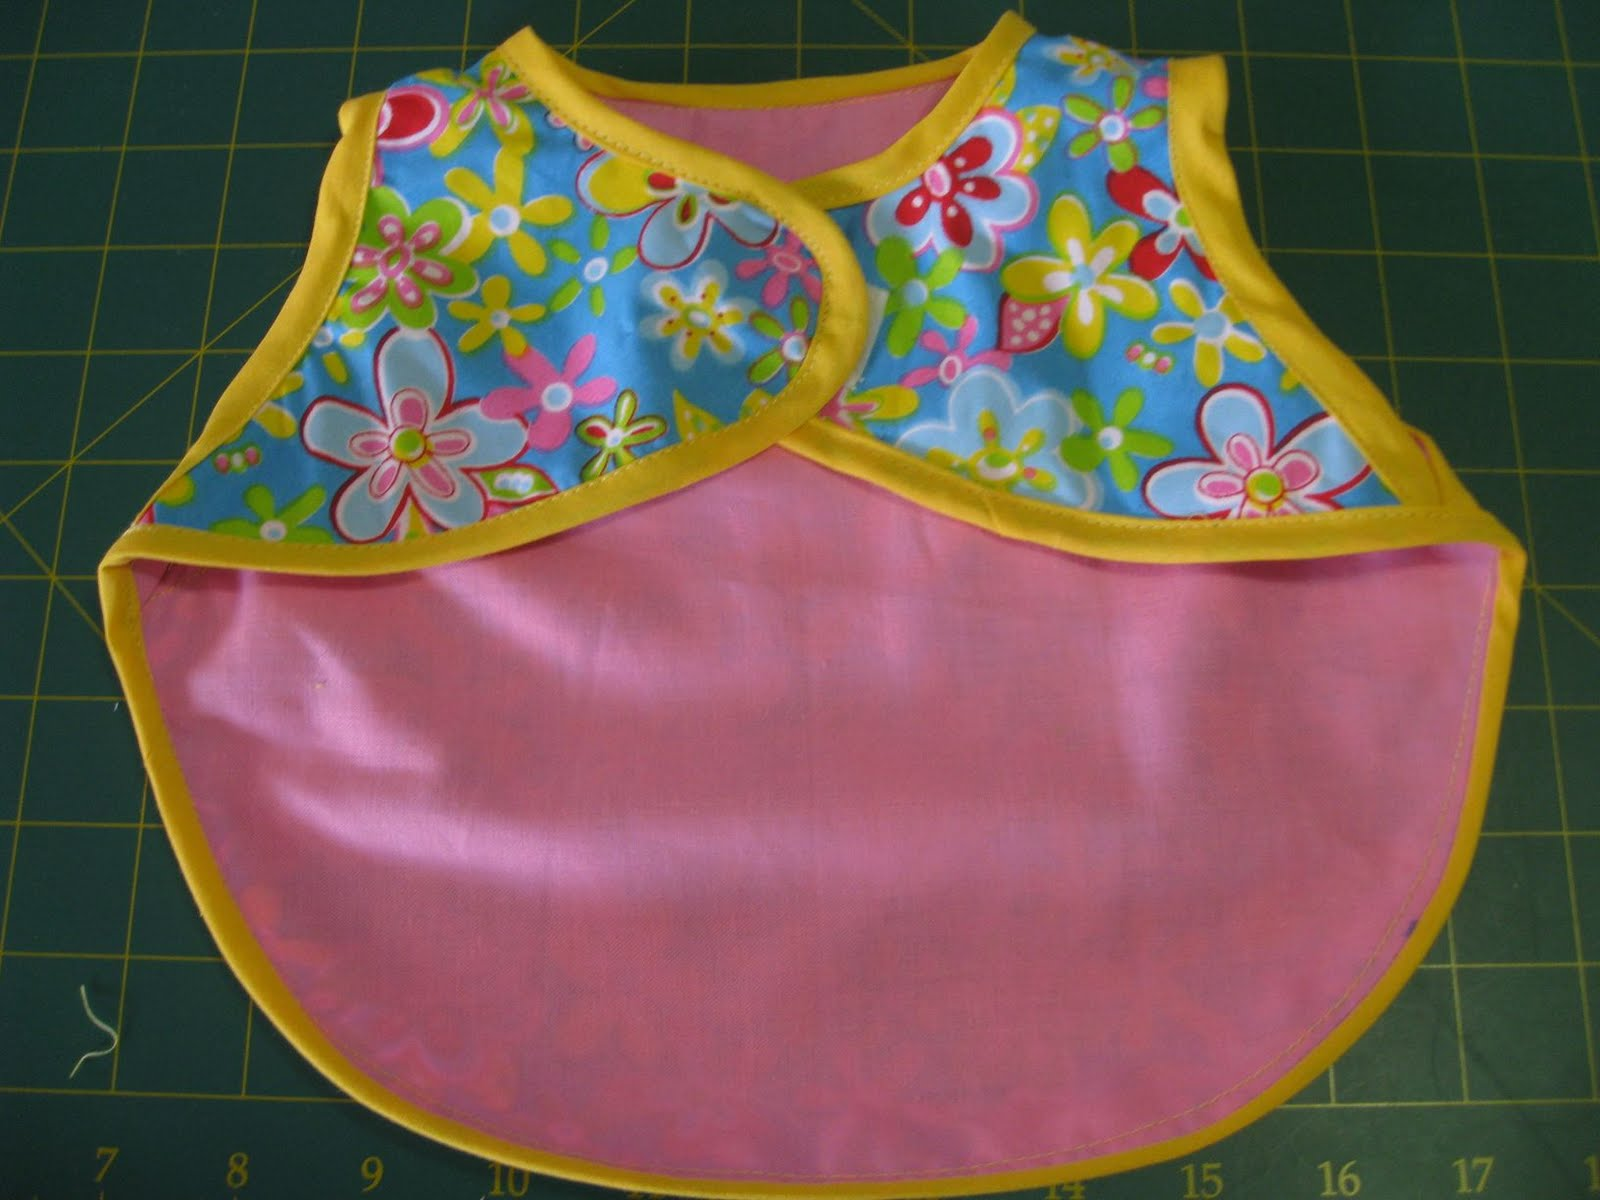 Vicki S Fabric Creations New Baby Apron Bib Feeder